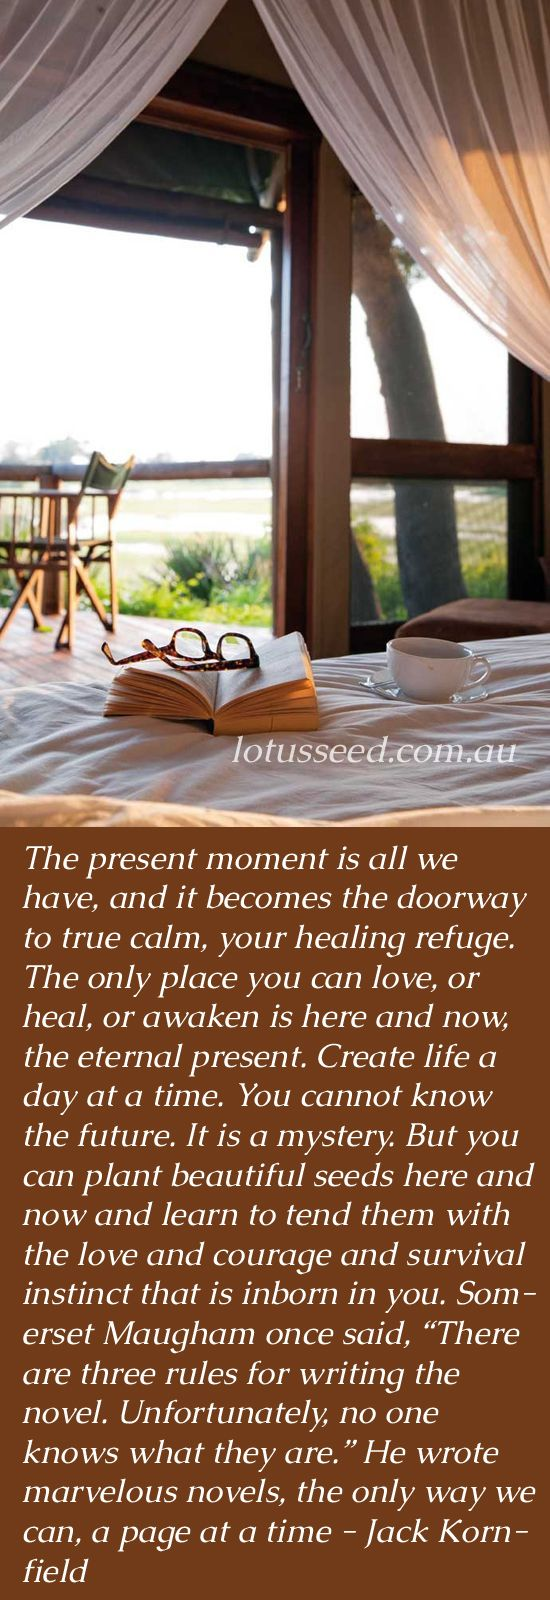 Jack Kornfield - Buddhist Zen quotes by lotusseed.com.au